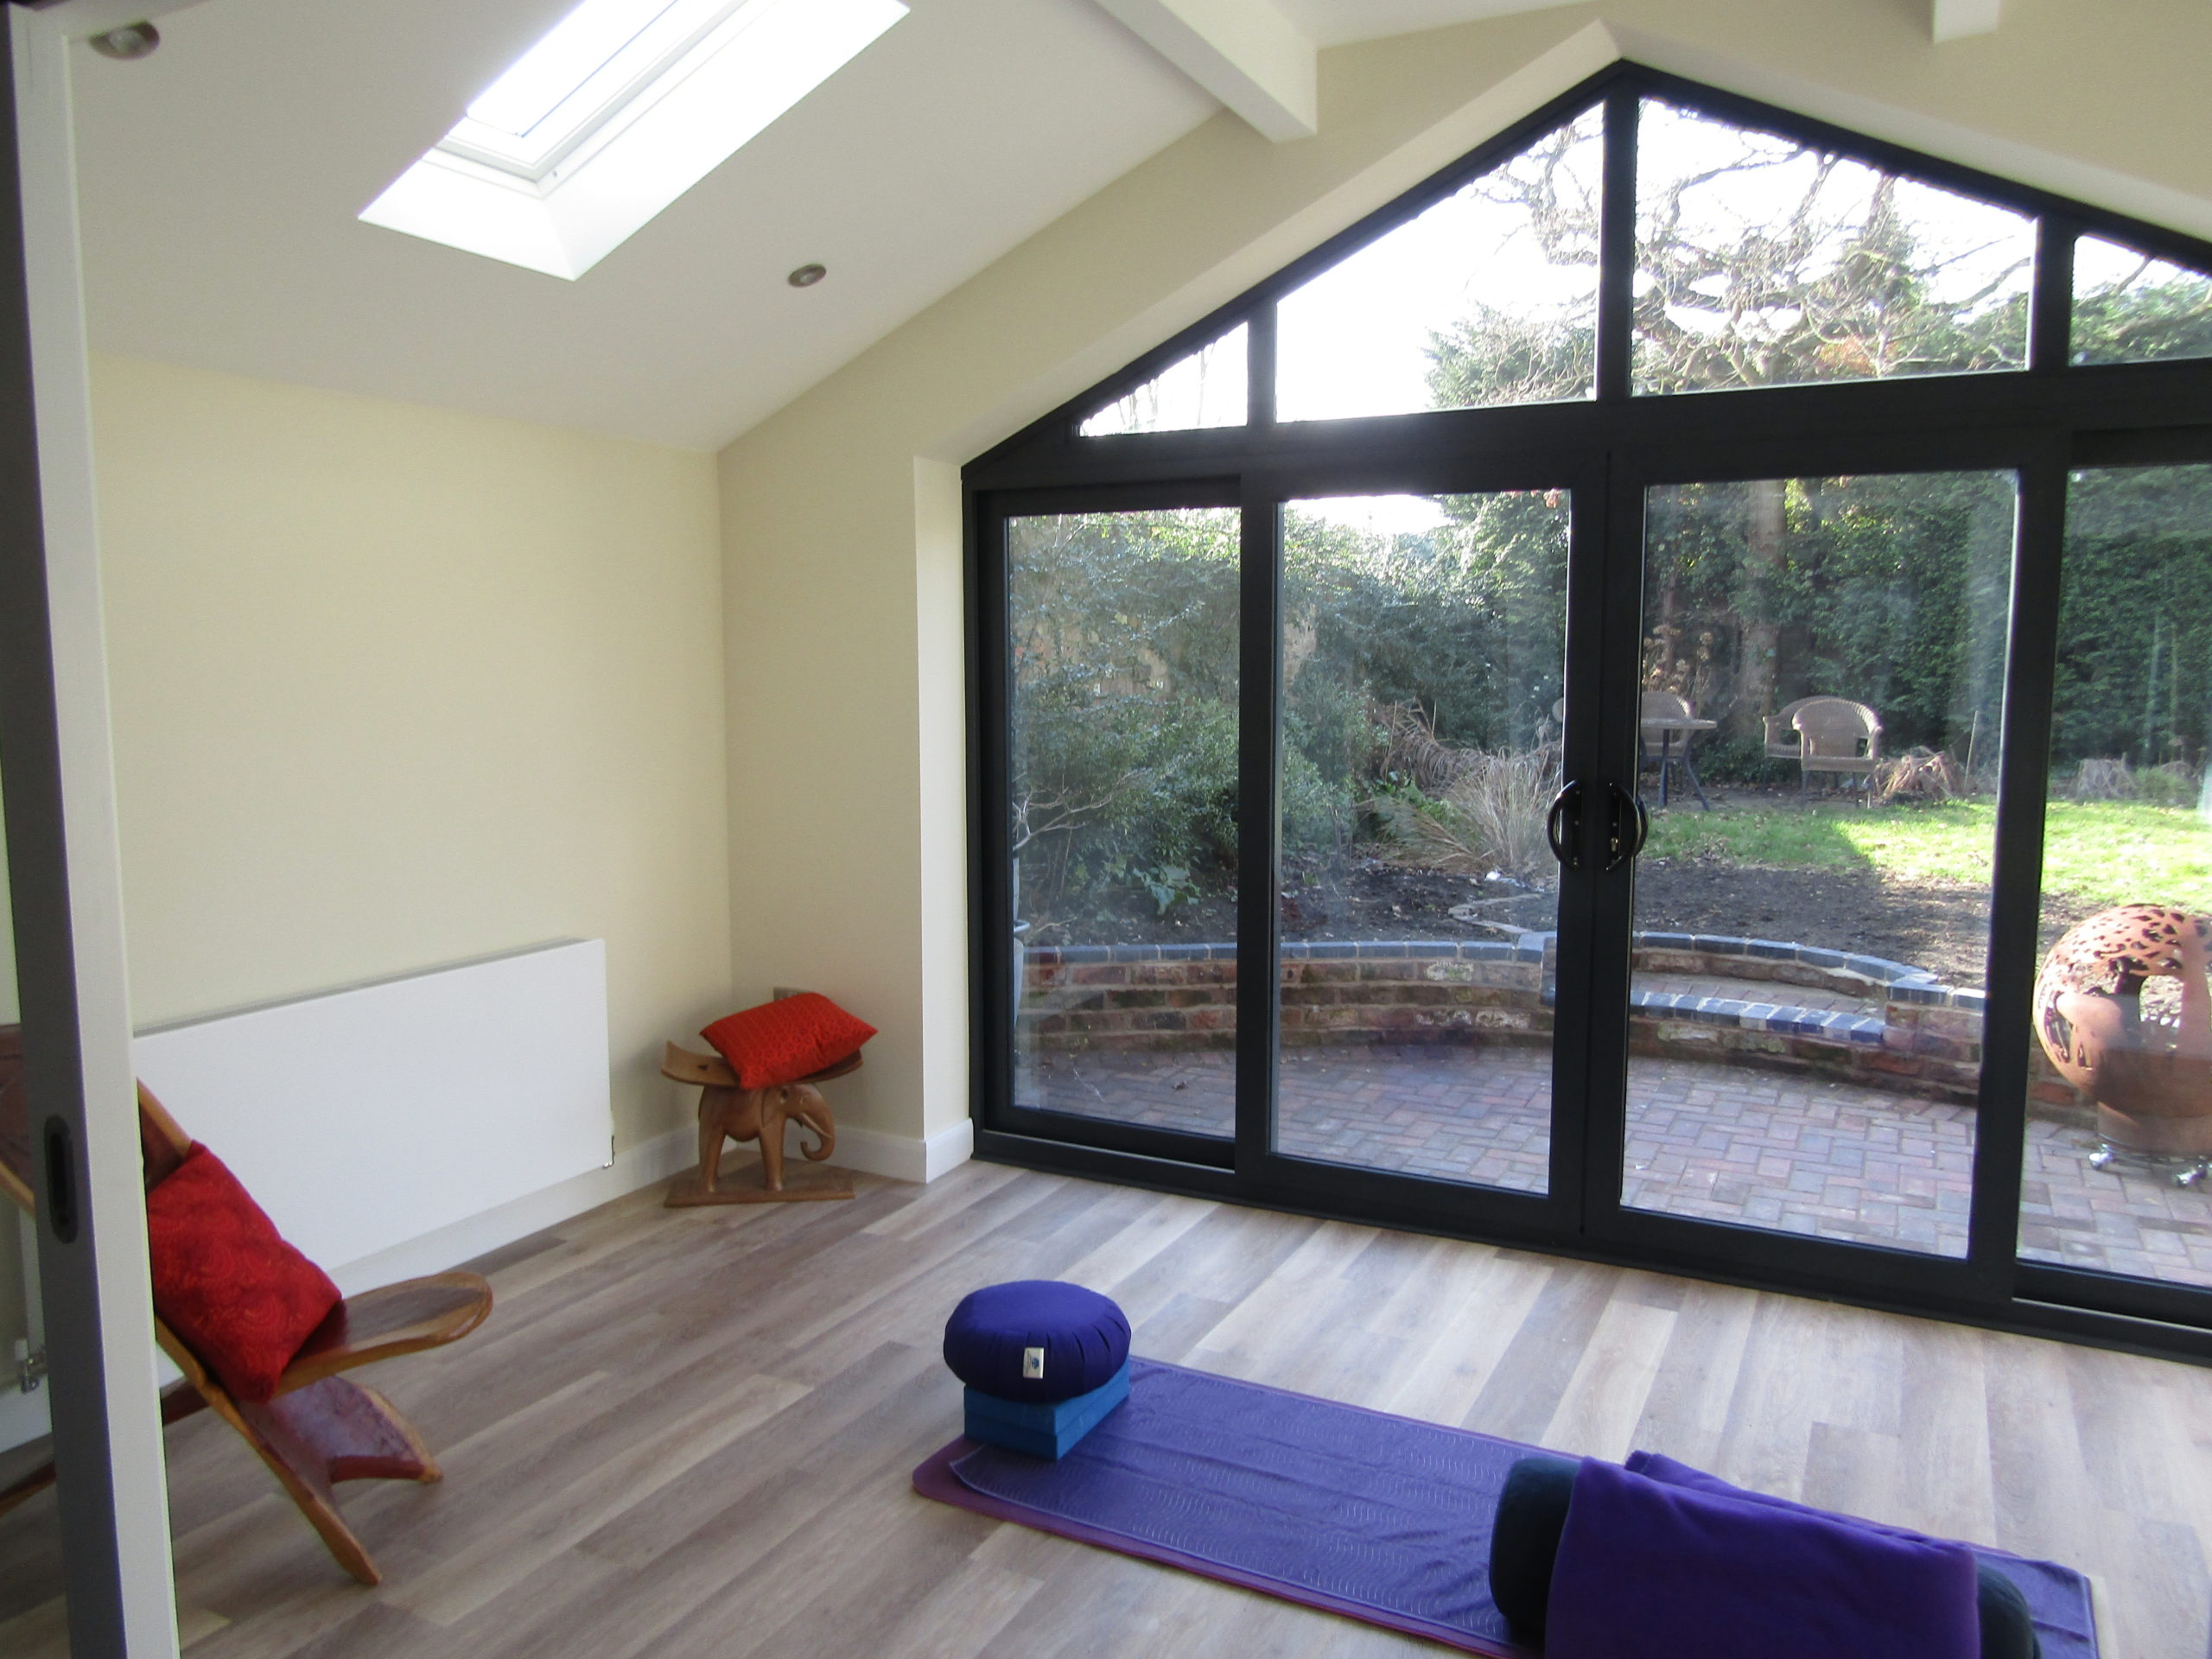 Yoga mat and block inside garage conversion